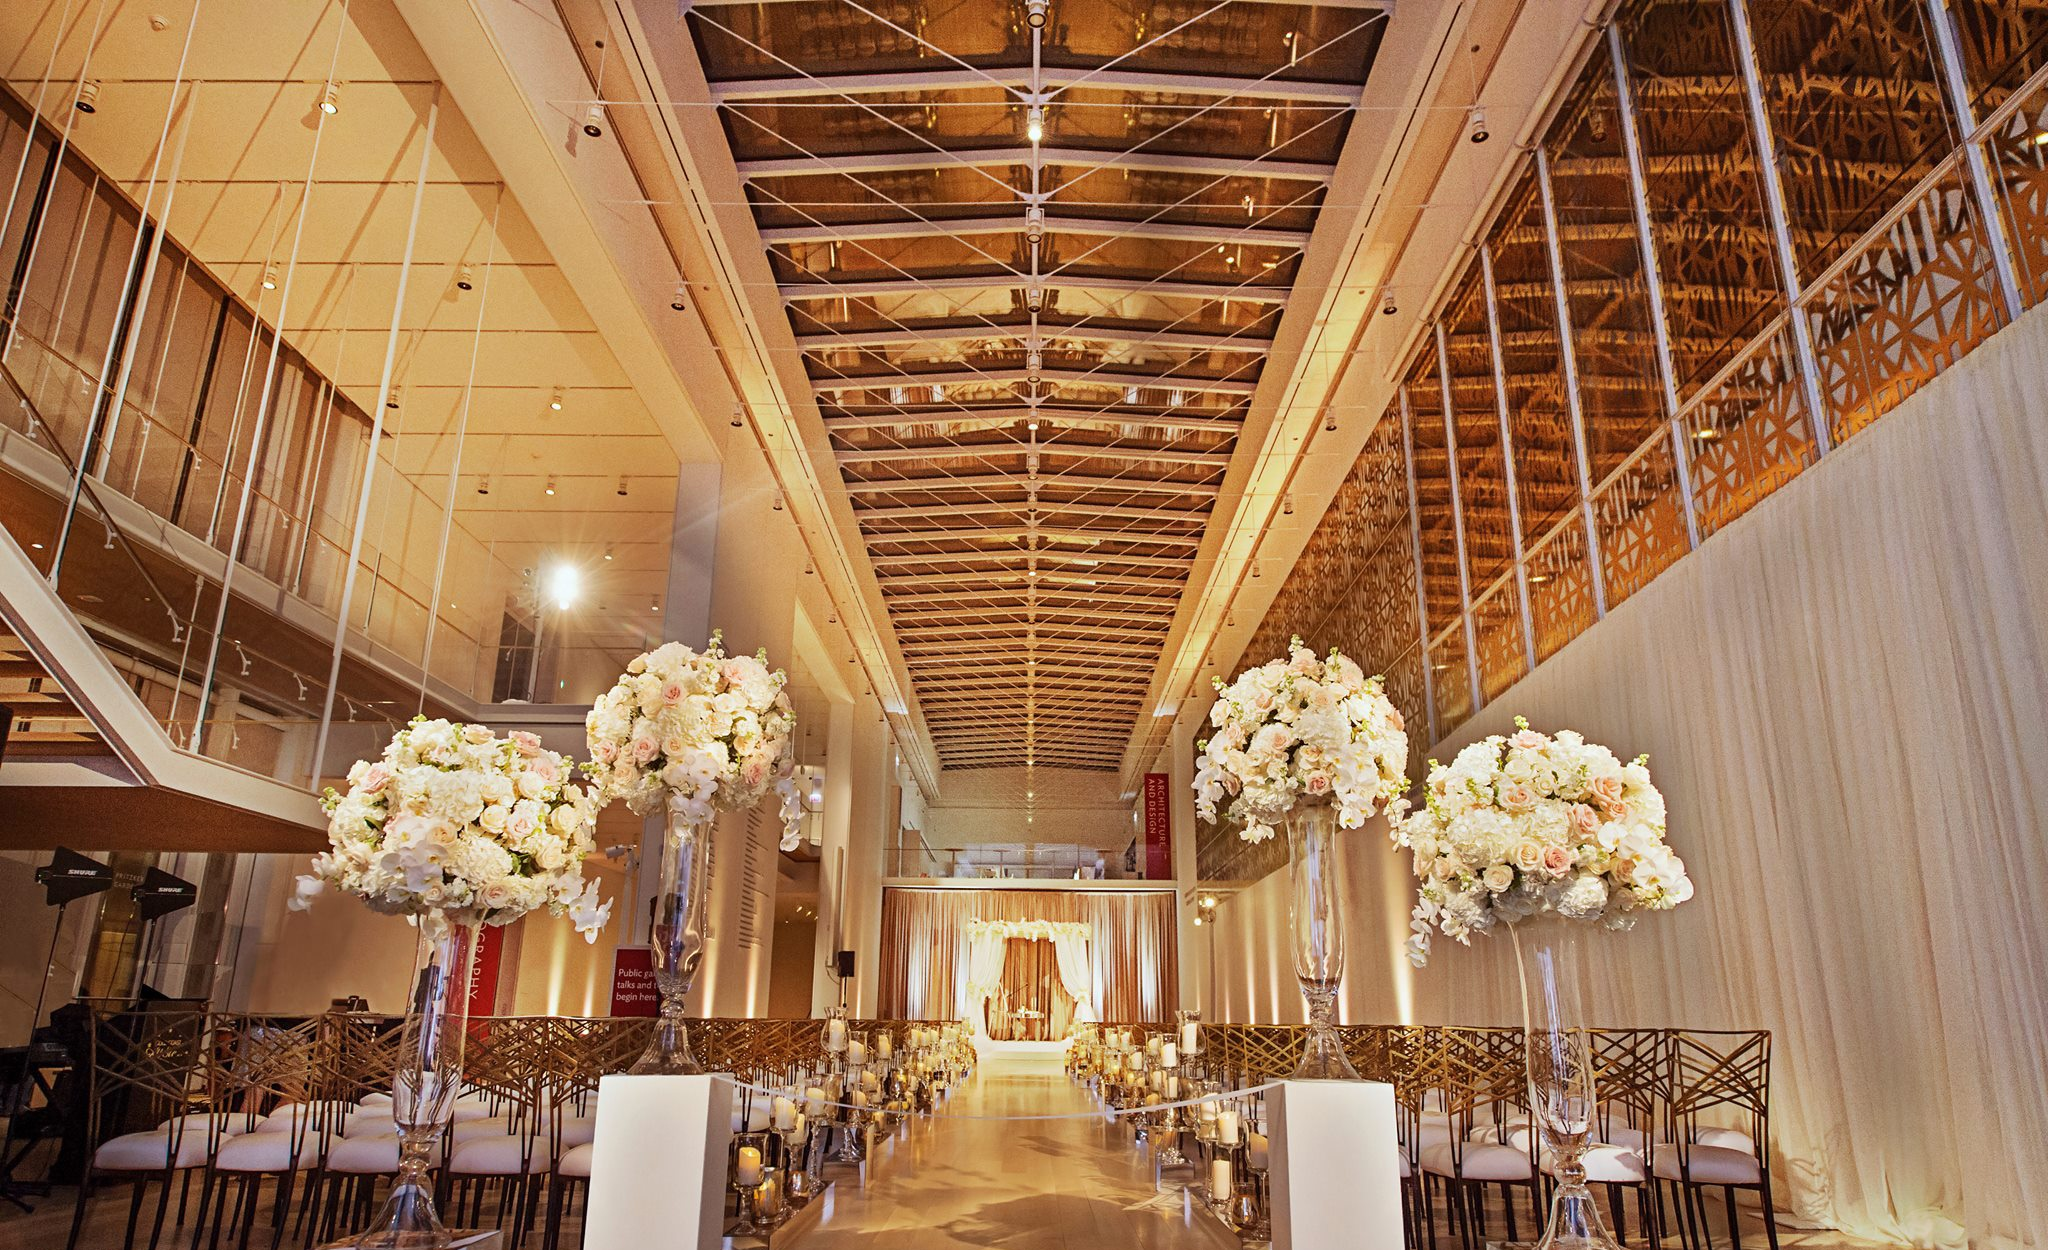 Wedding Aisle Ideas - The Modern Wing of Art Institute of Chicago